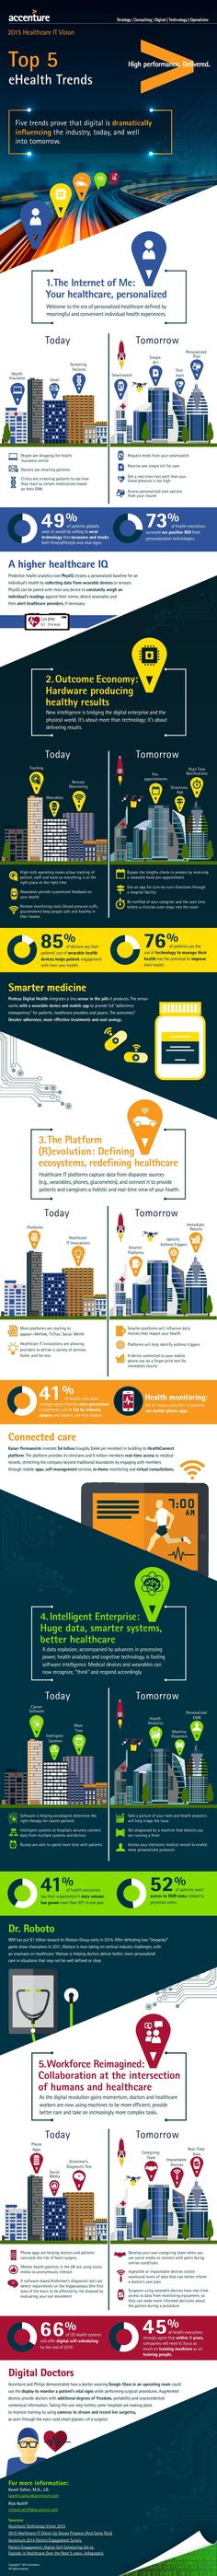 Infographic: 5 Digital Health Trends Reshaping Healthcare in 2015